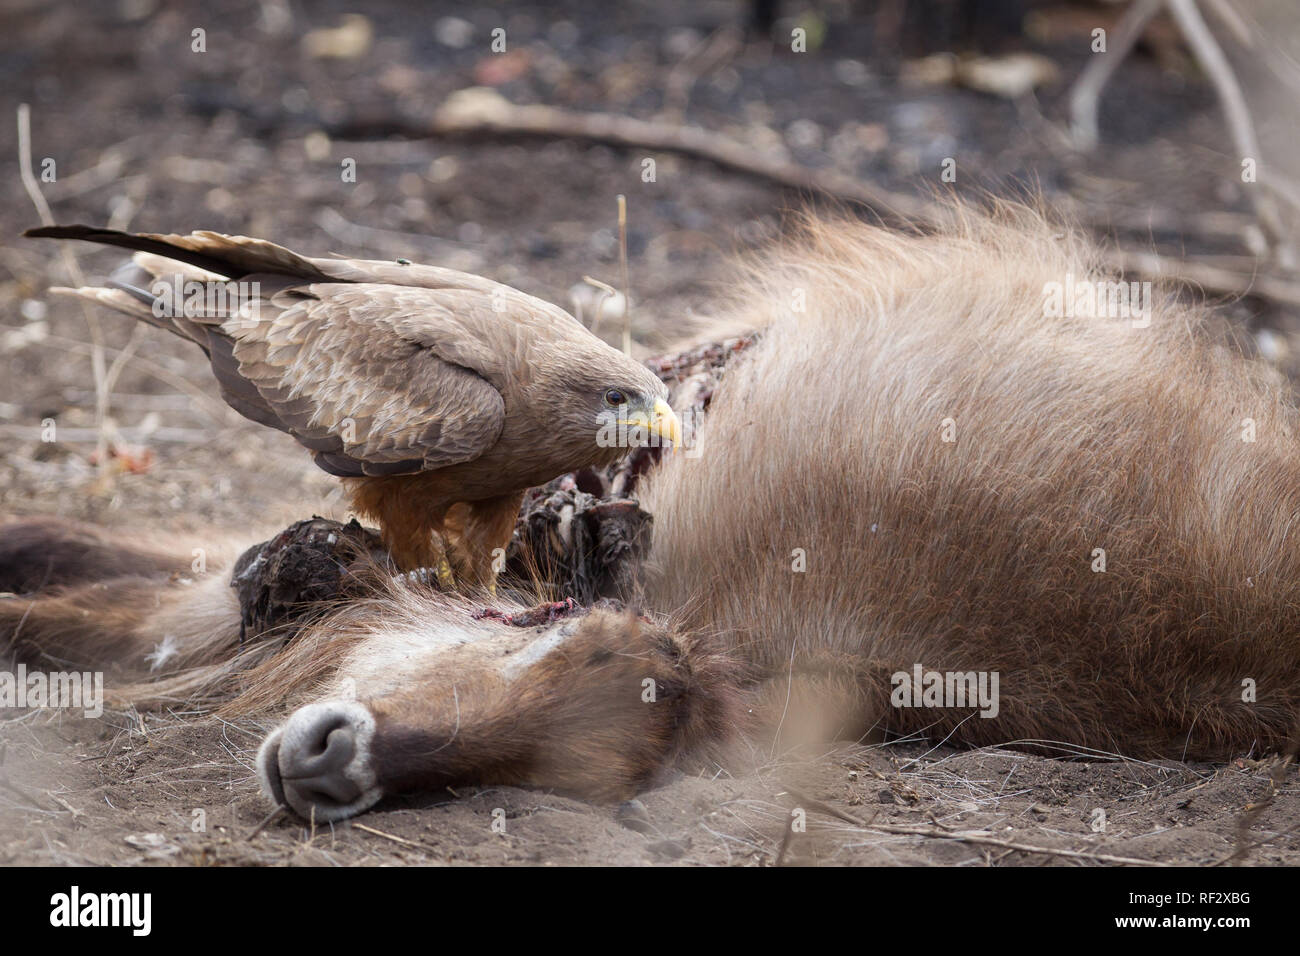 Late rains in Majete Wildlife Reserve led to the death of a waterbuck which provided food for a scavenging Yellow-billed kite, Milvus aegyptius - Stock Image